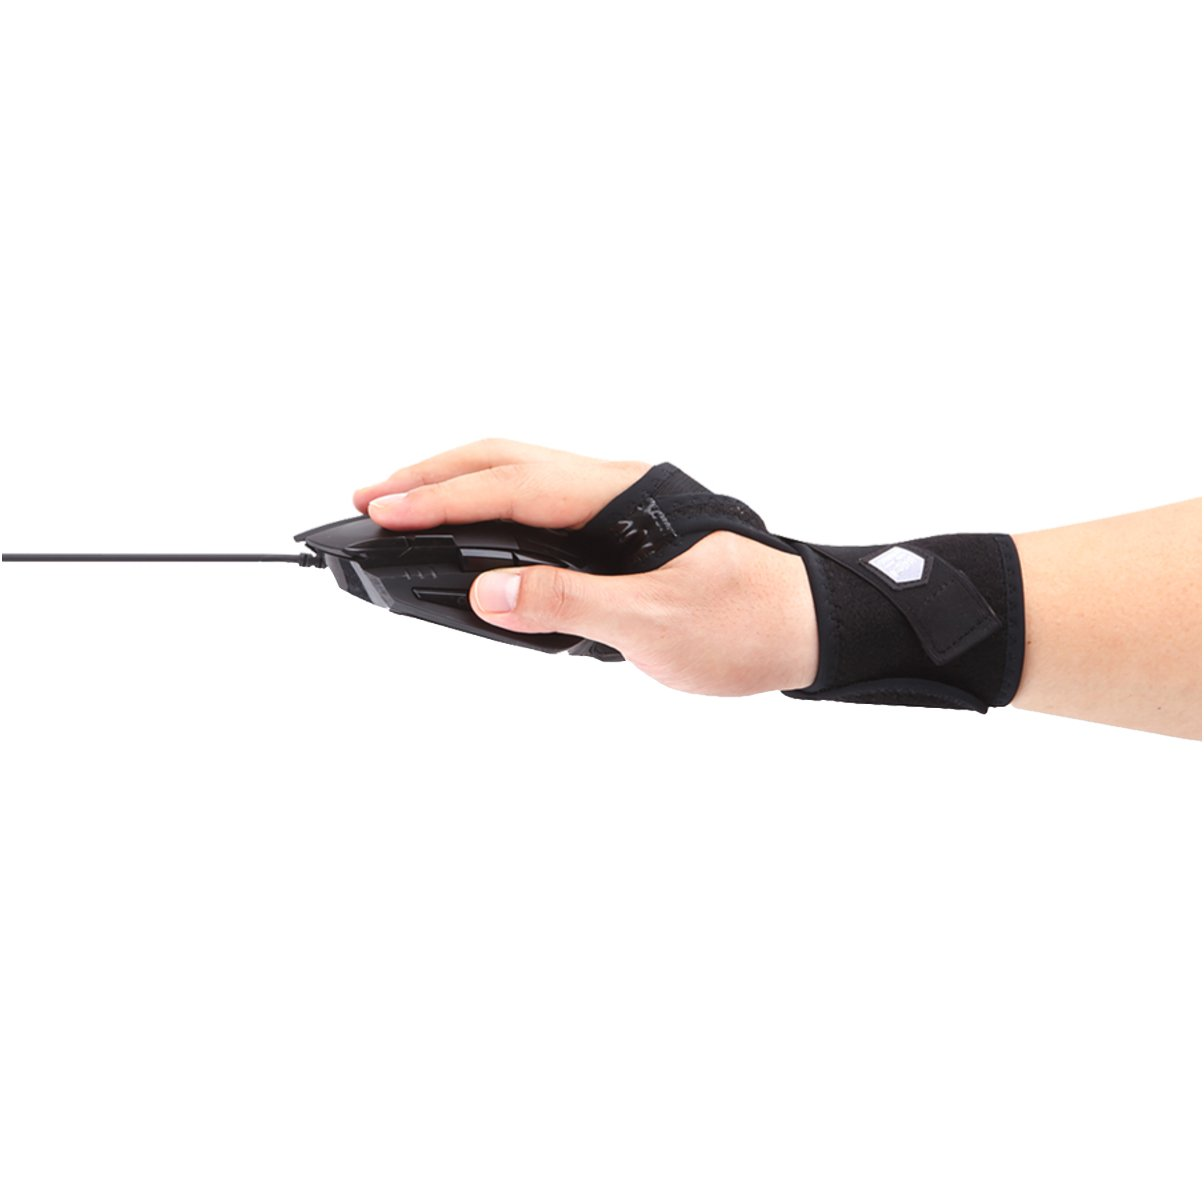 [Right Handed] Aider Professional e-Sports Gamer's Mouse Wrist Support Strap Camera Brace Sleeve - Type II - Made in Korea by Aider